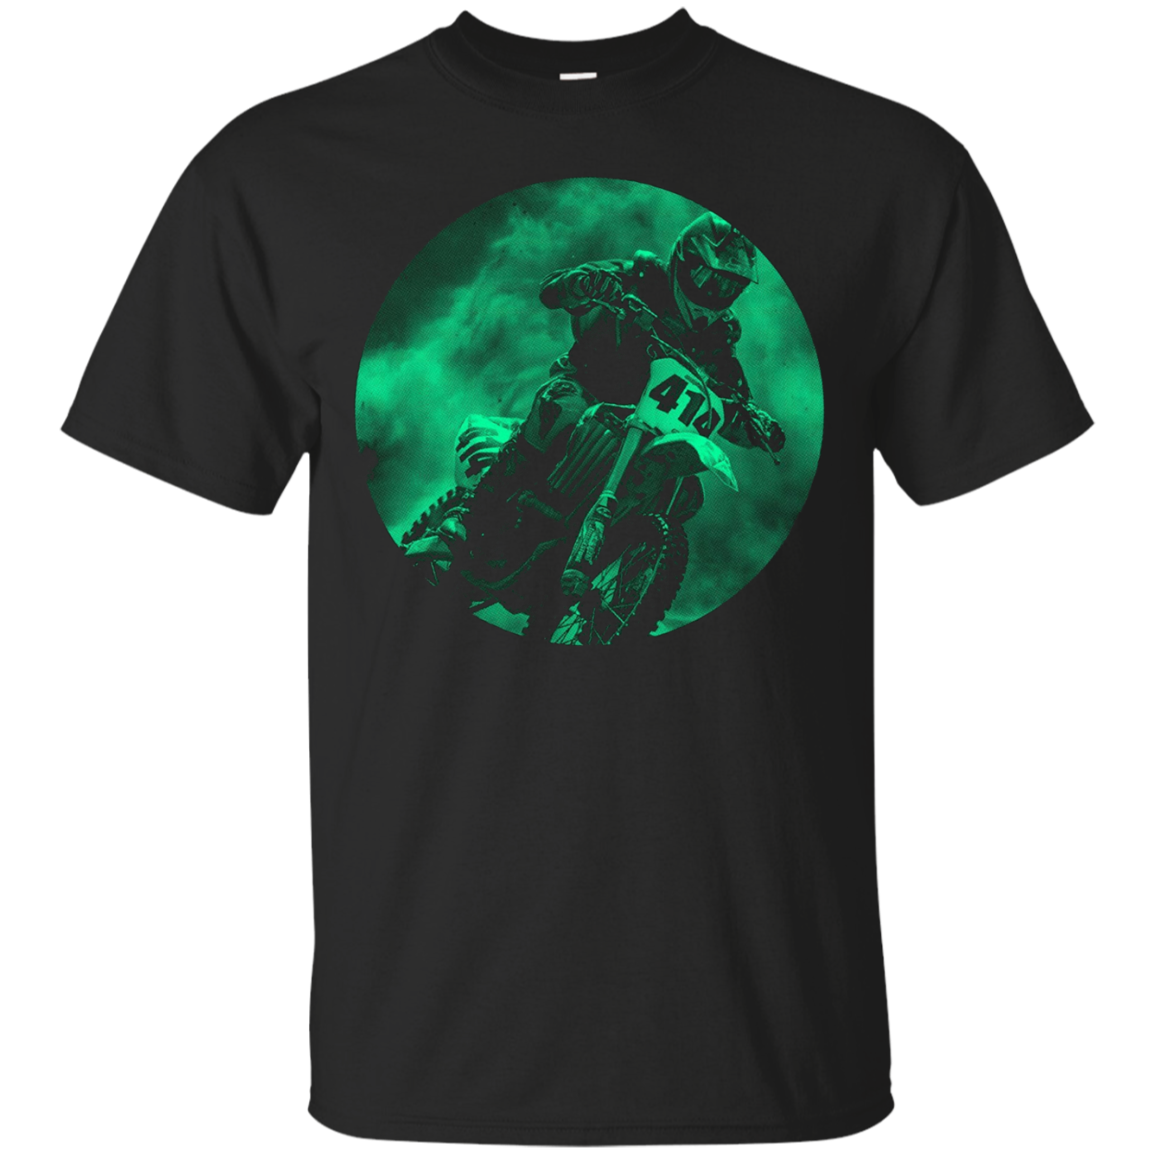 Dirt Bike T-Shirt | Motocross Enduro Shirt